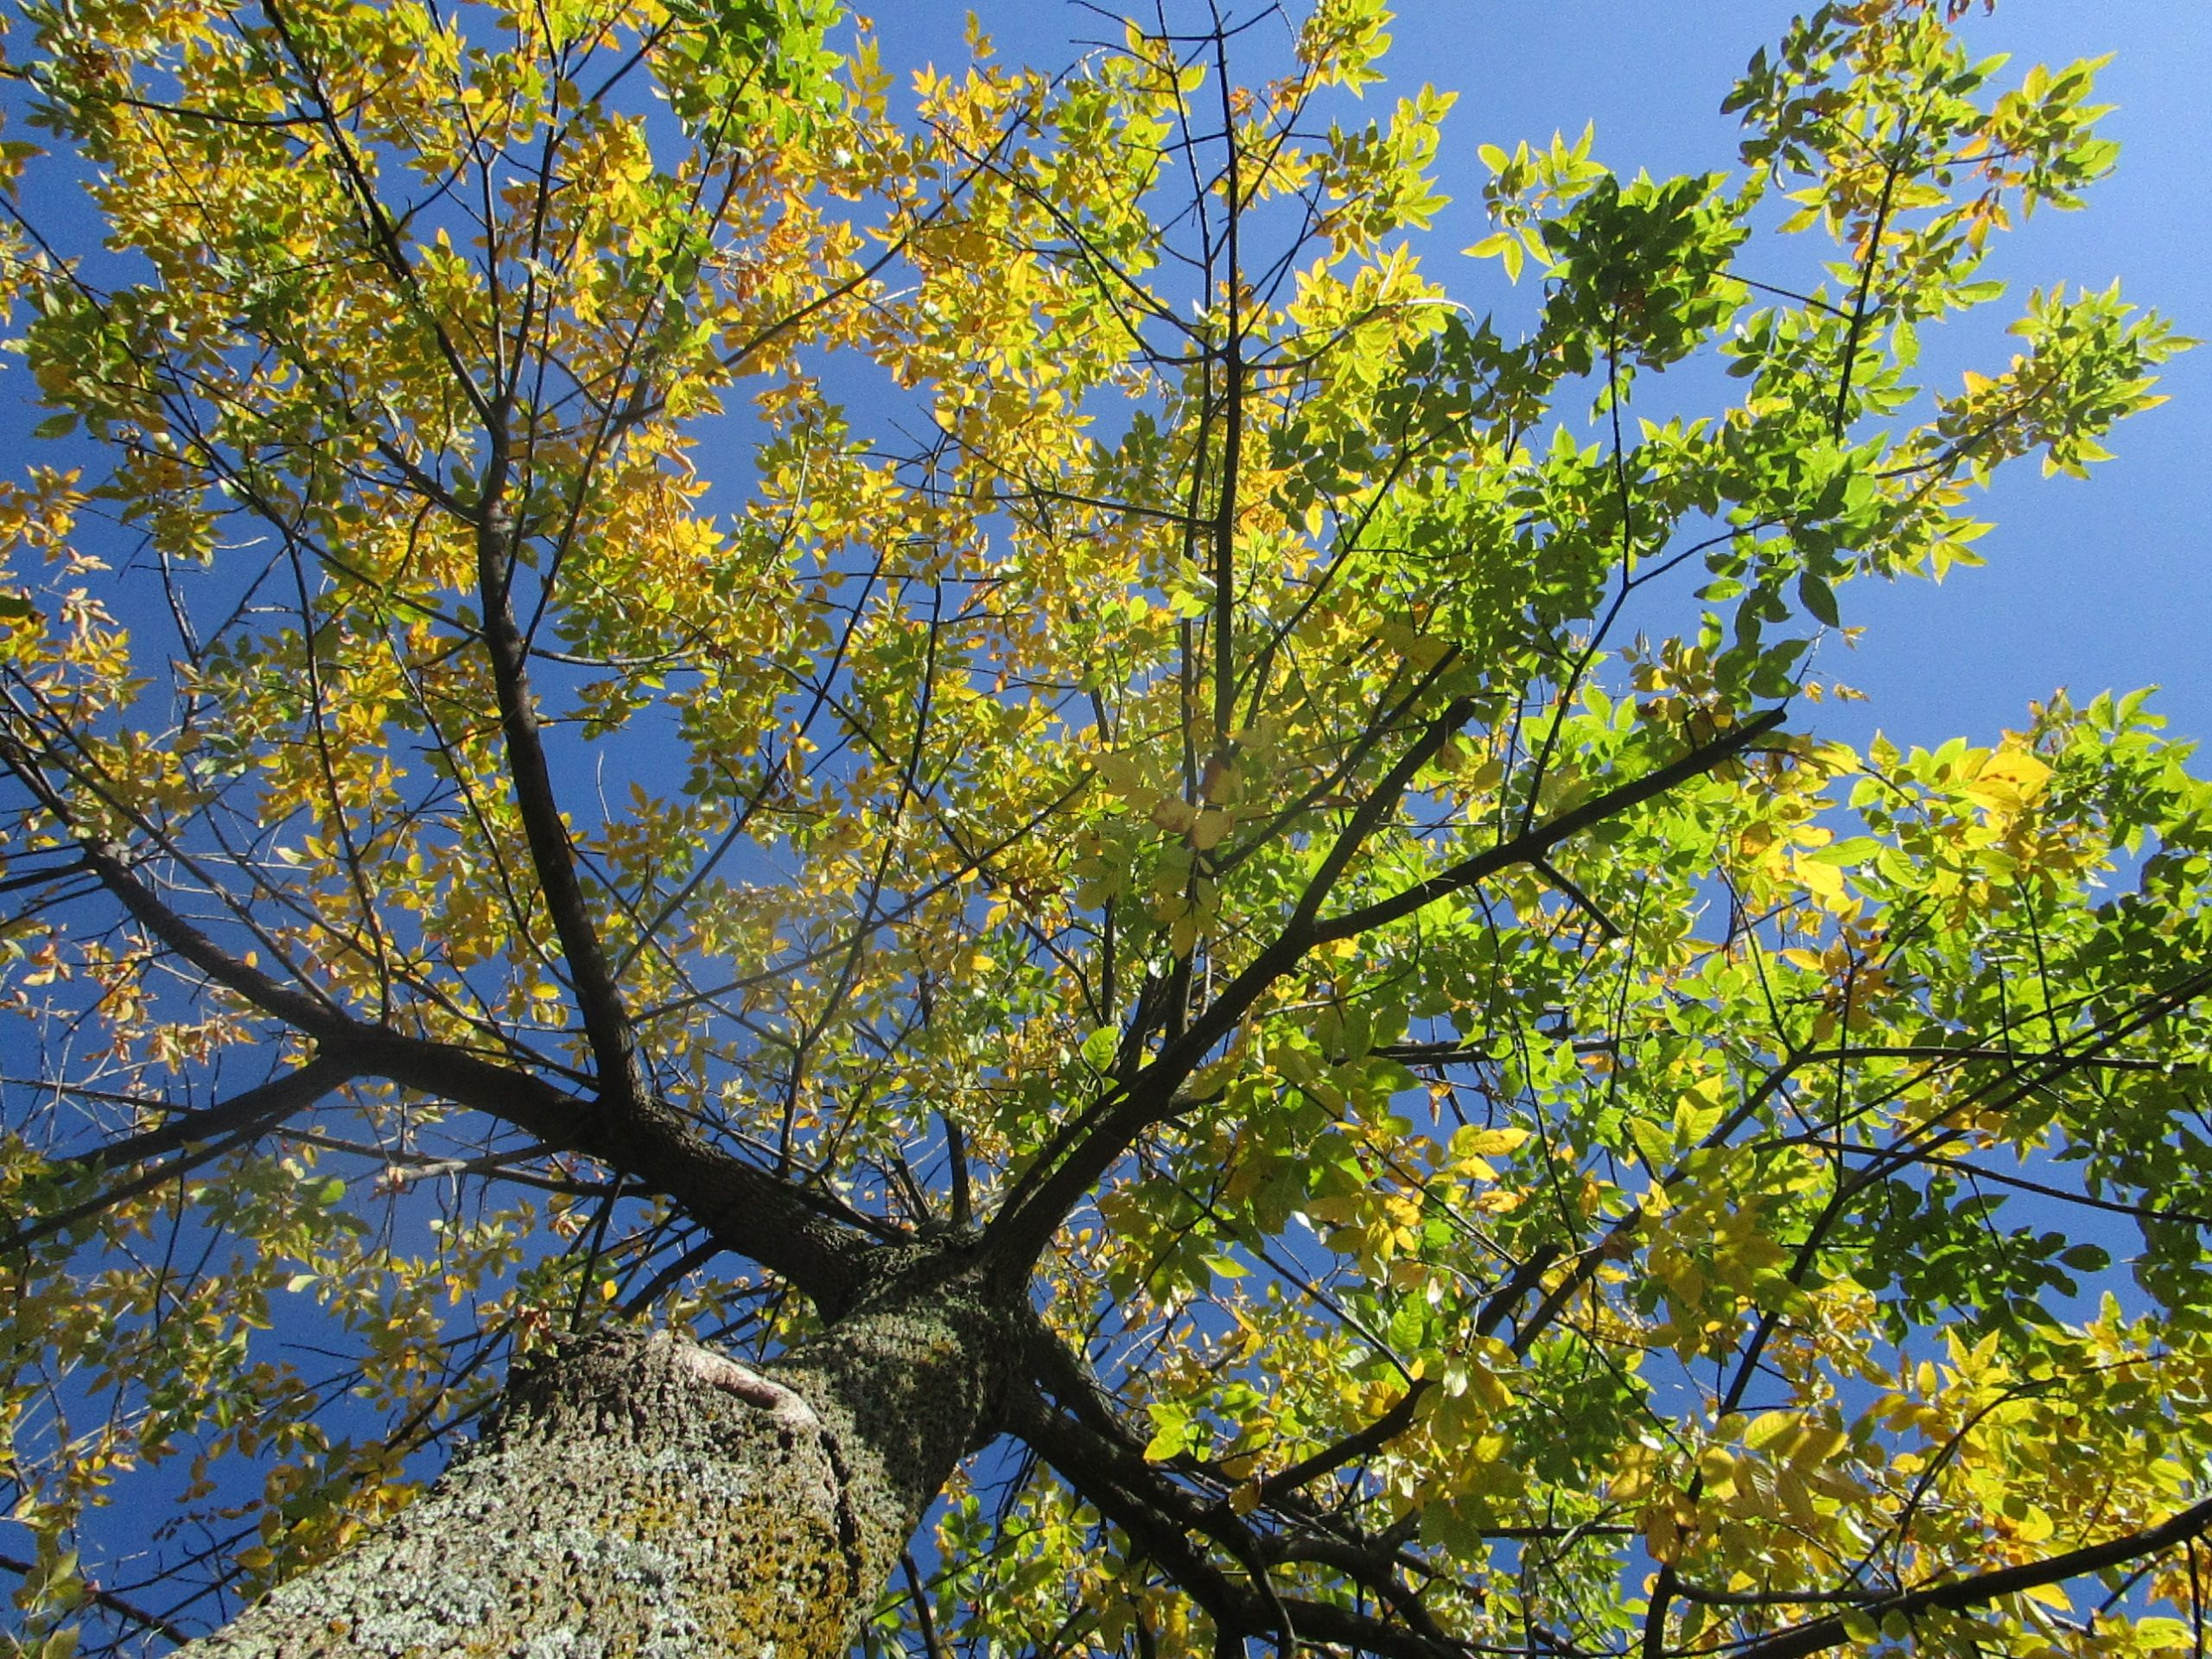 black ash tree fall colors - Google Search | Trees | Pinterest | Ash ...